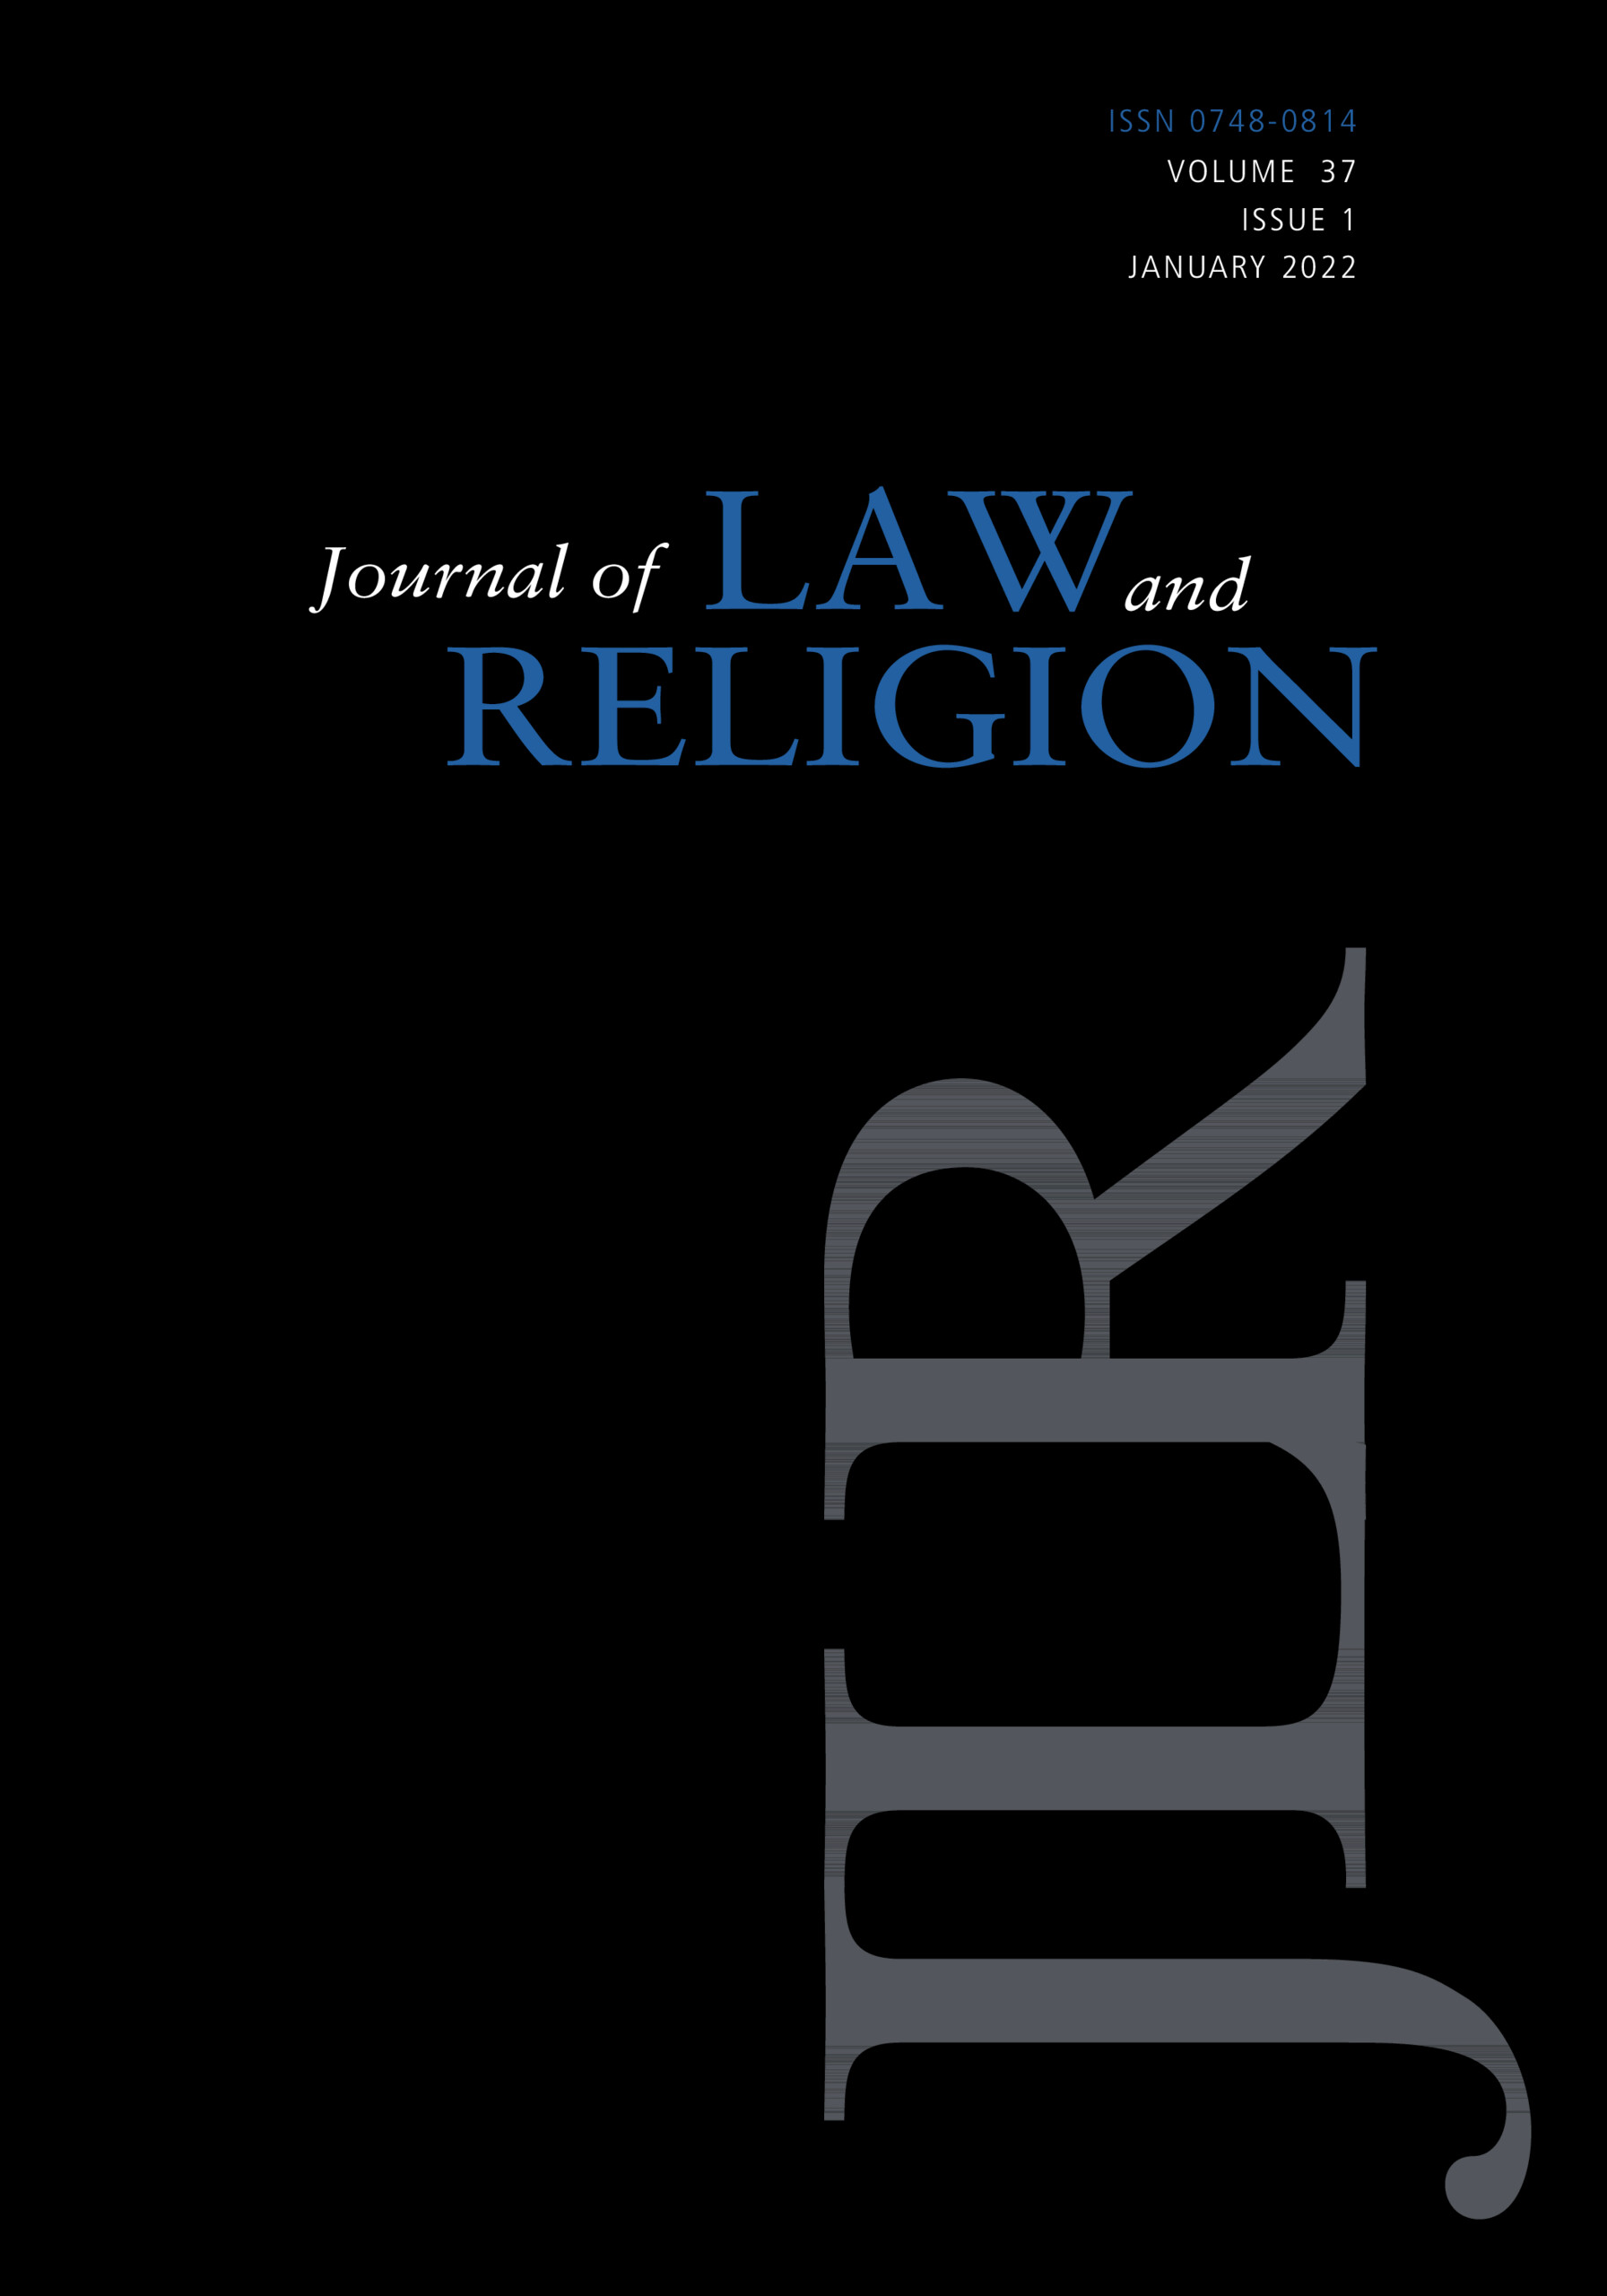 Journal of Law and Religion | Cambridge Core